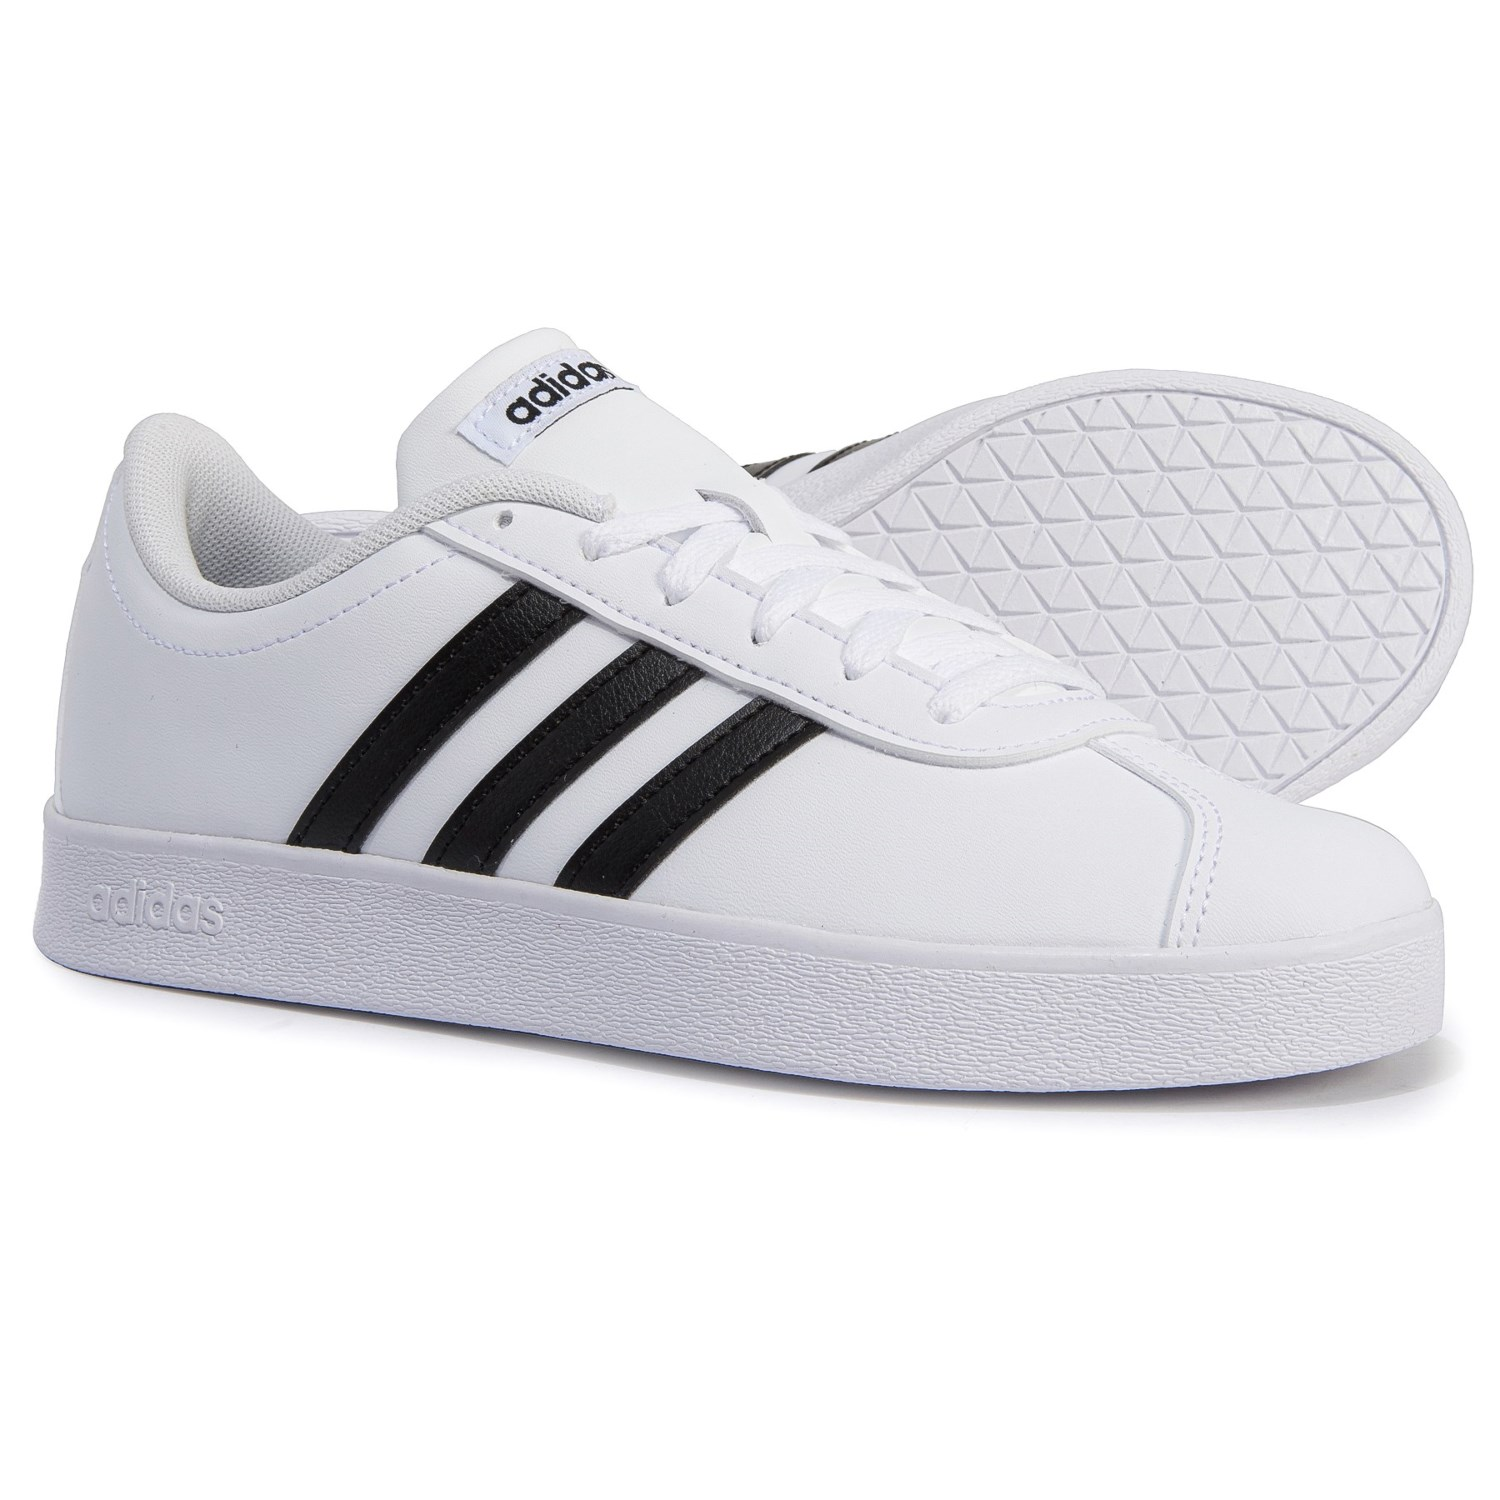 adidas Neo VL Court 2.0 Sneakers (For Little and Big Kids